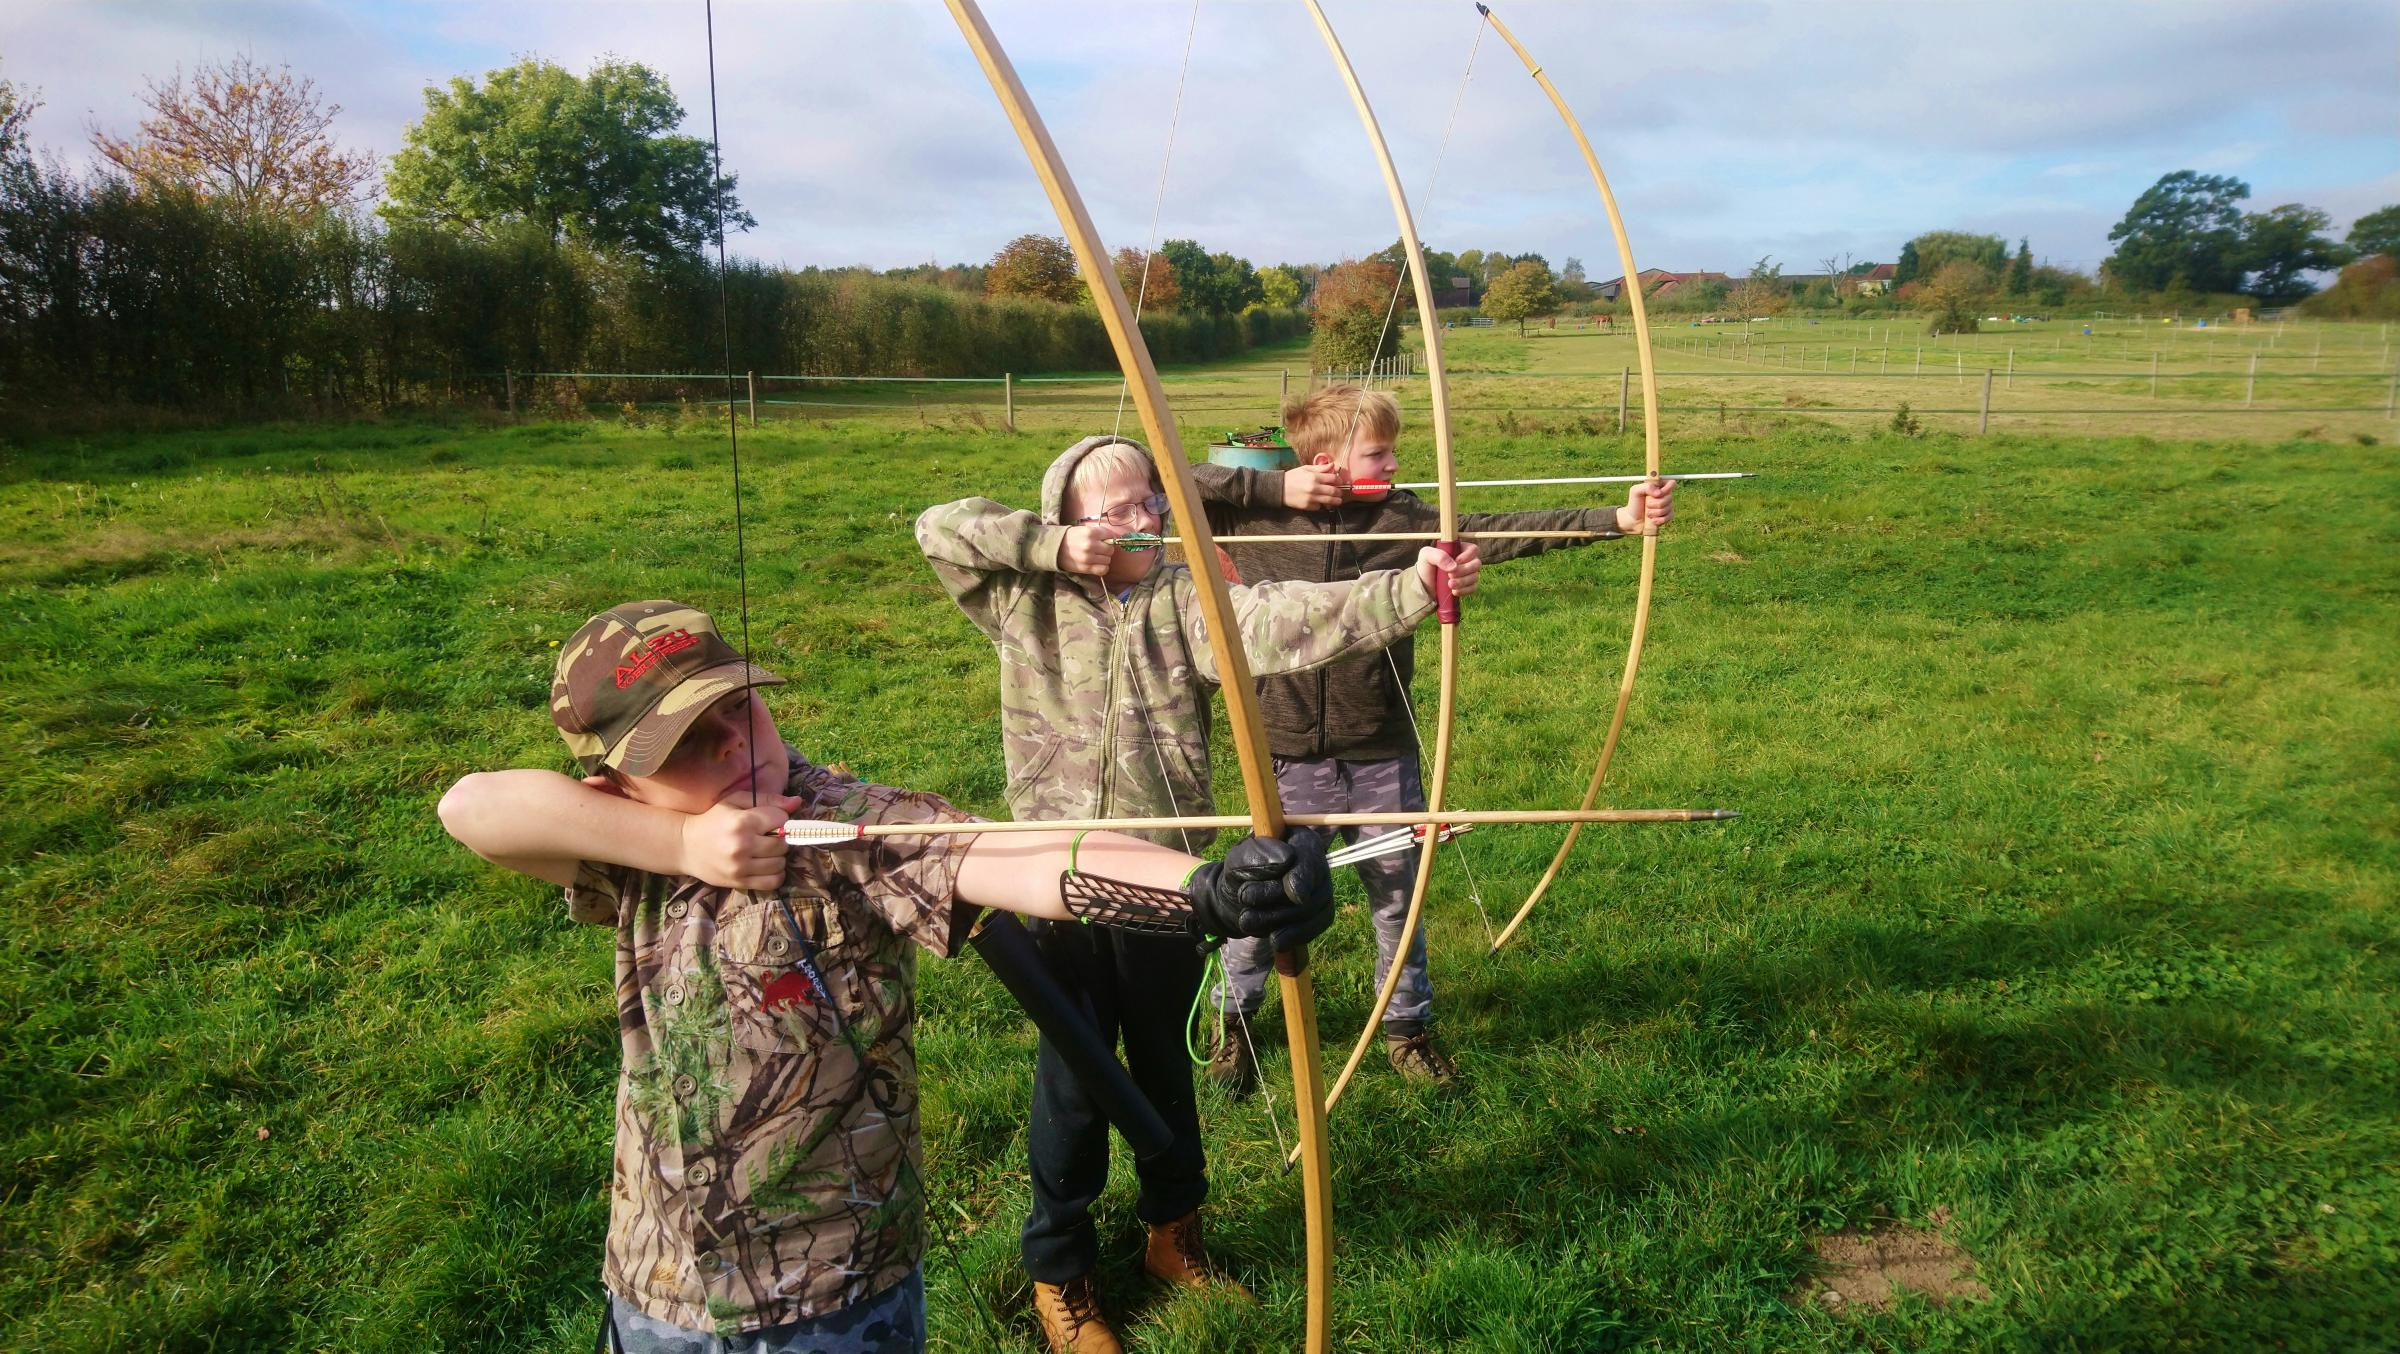 Summer archery camps for kids